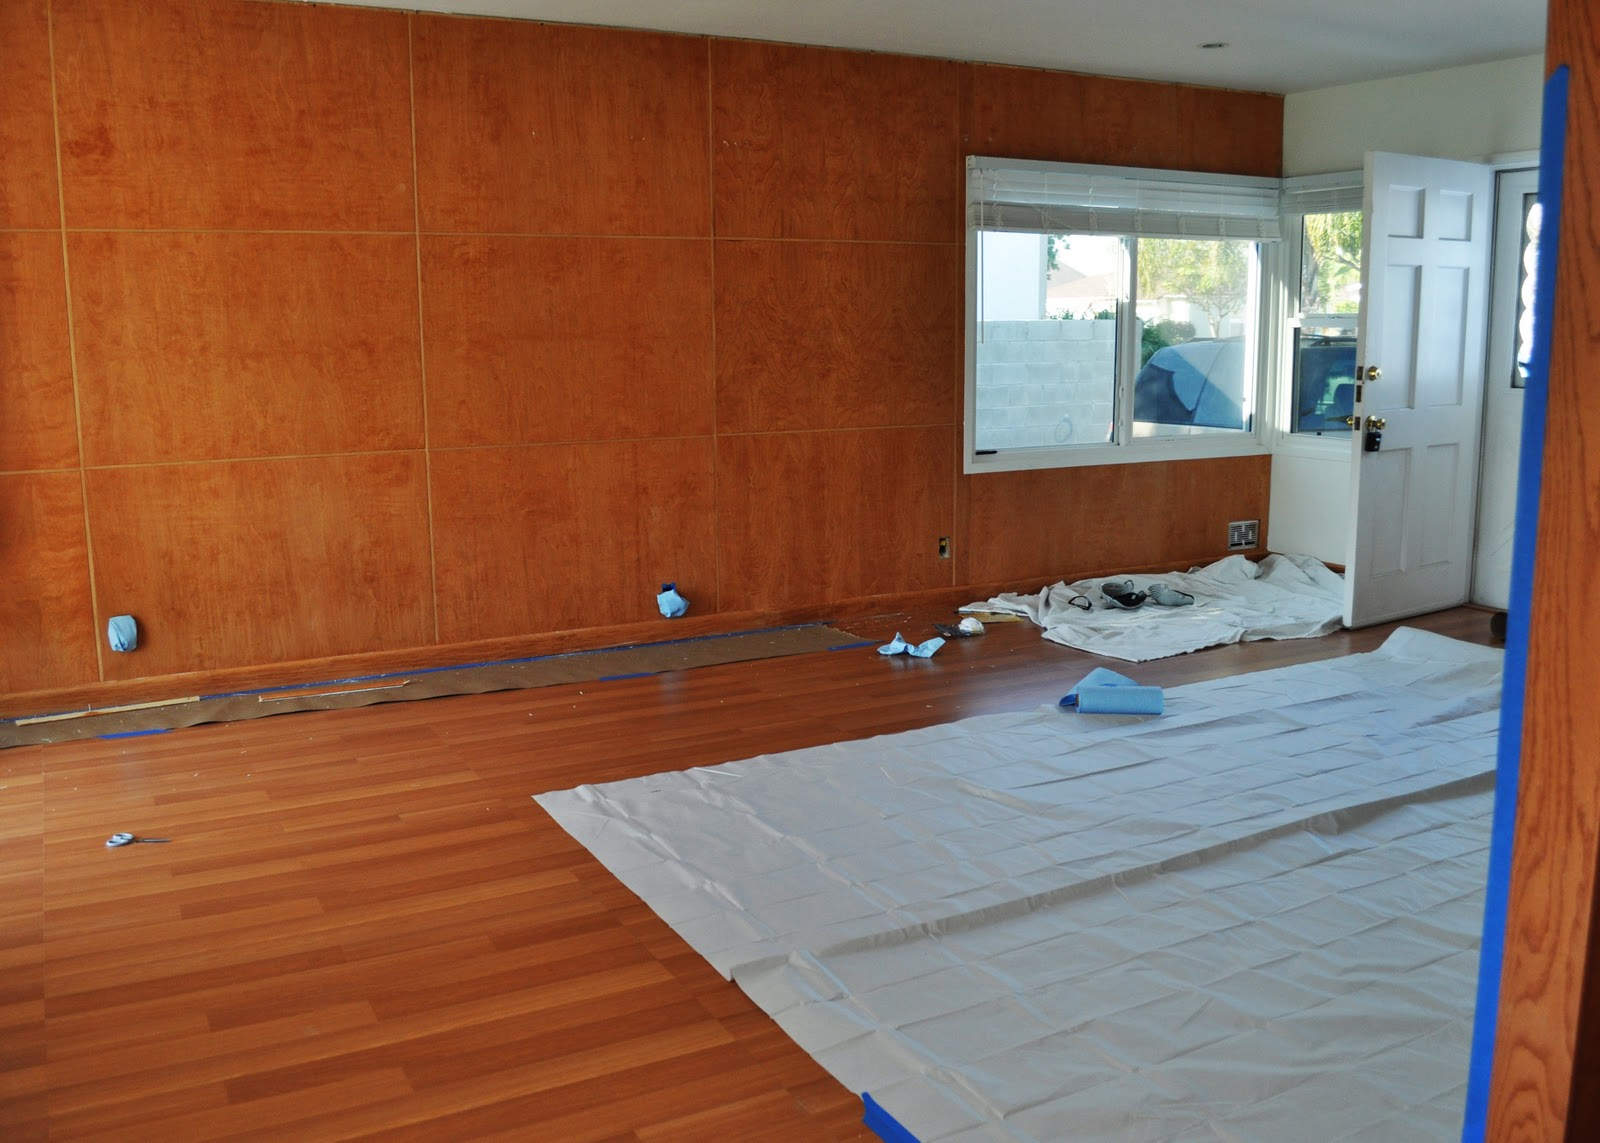 DIY: Painting Wood Paneling